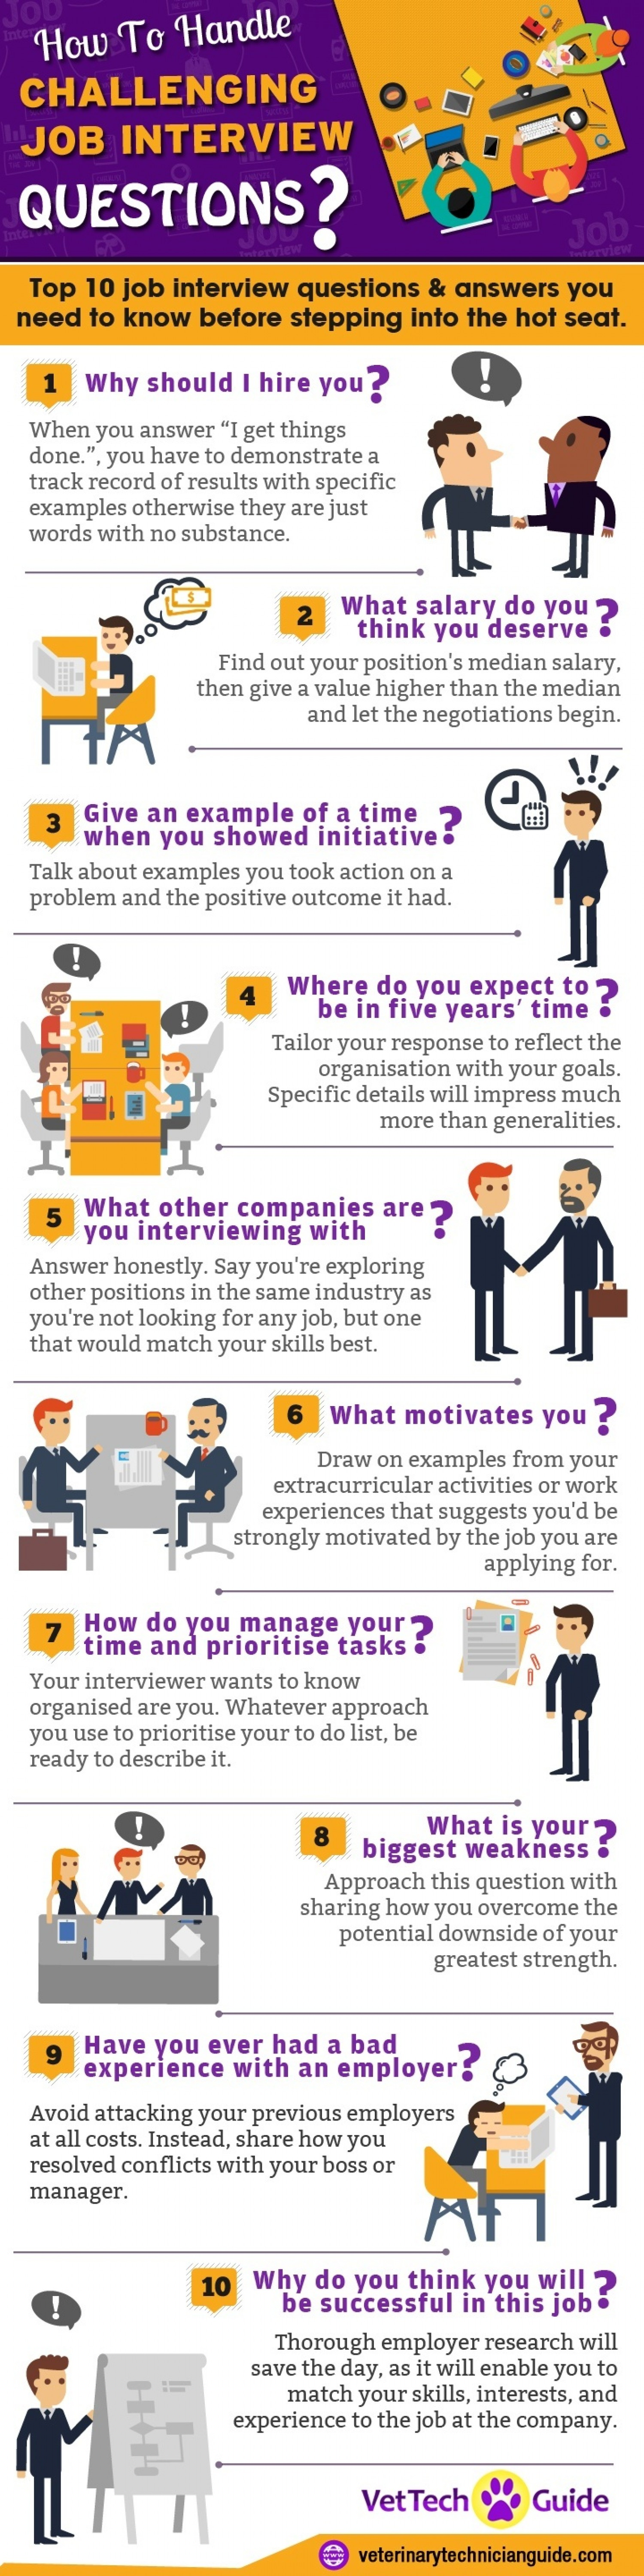 how-to-handle-challenging-job-interview-questions